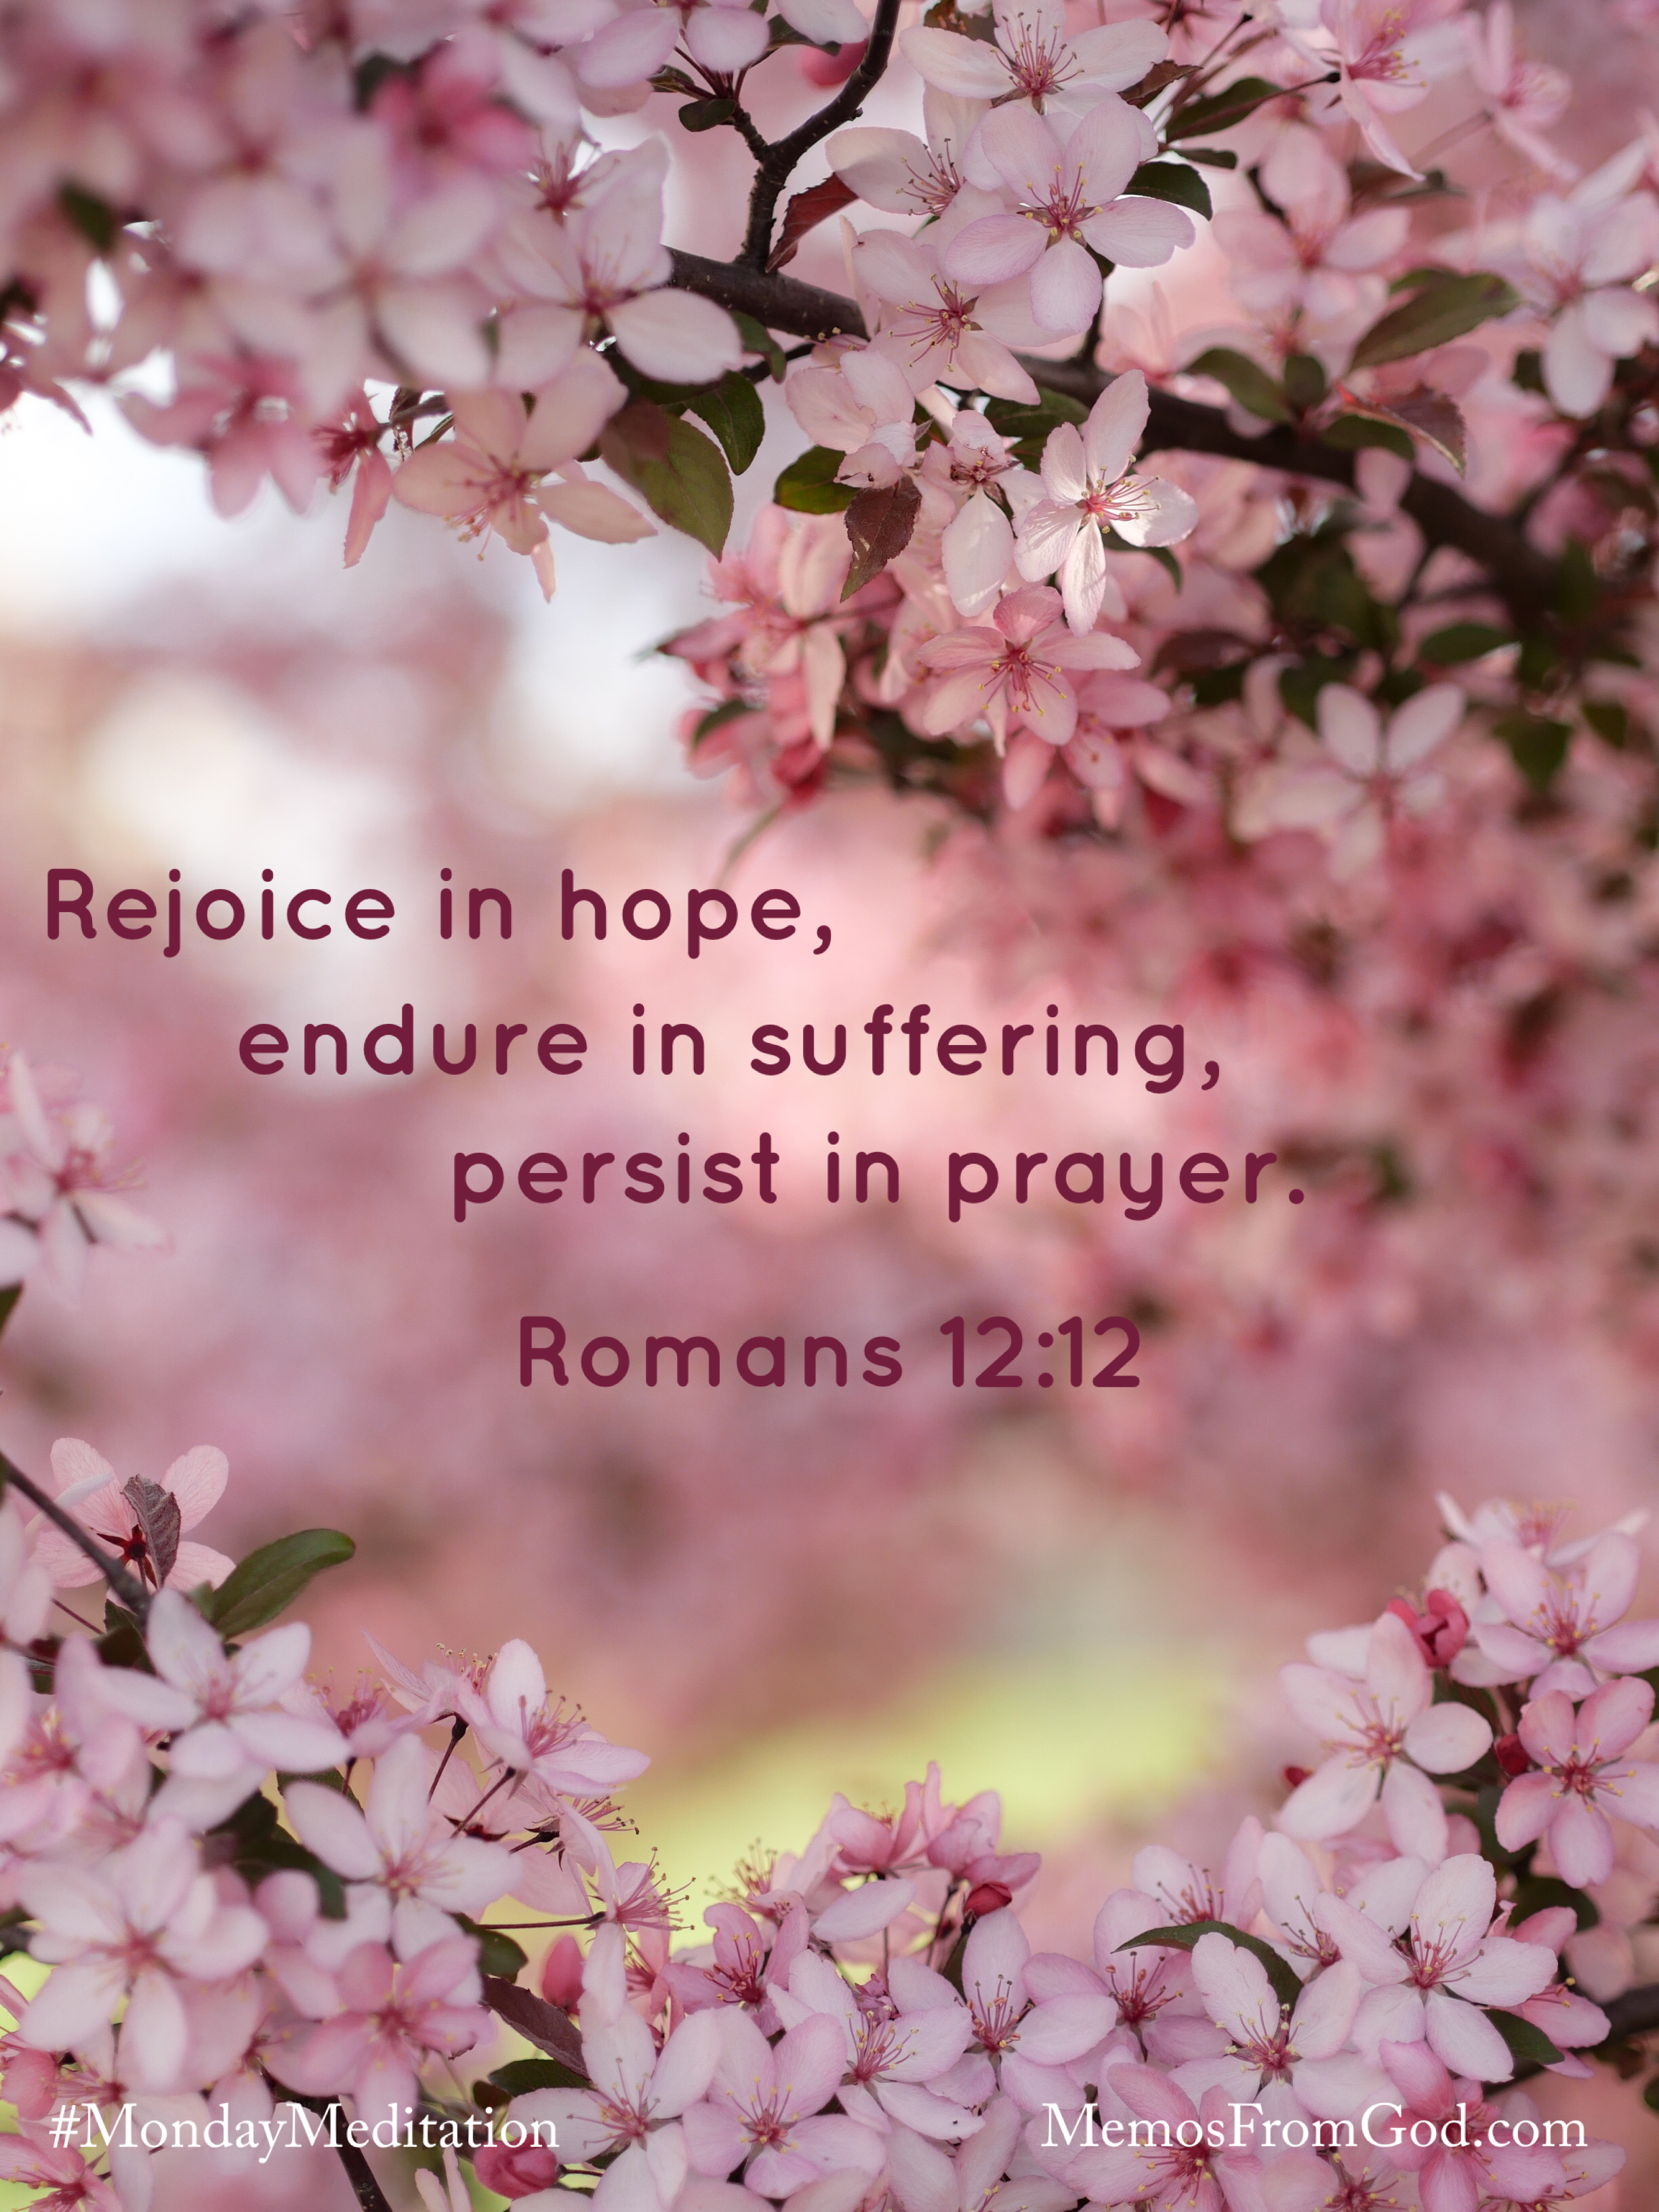 Tree branches of pink blossoms. Caption: Rejoice in hope, endure in suffering, persist in prayer. Romans 12:12